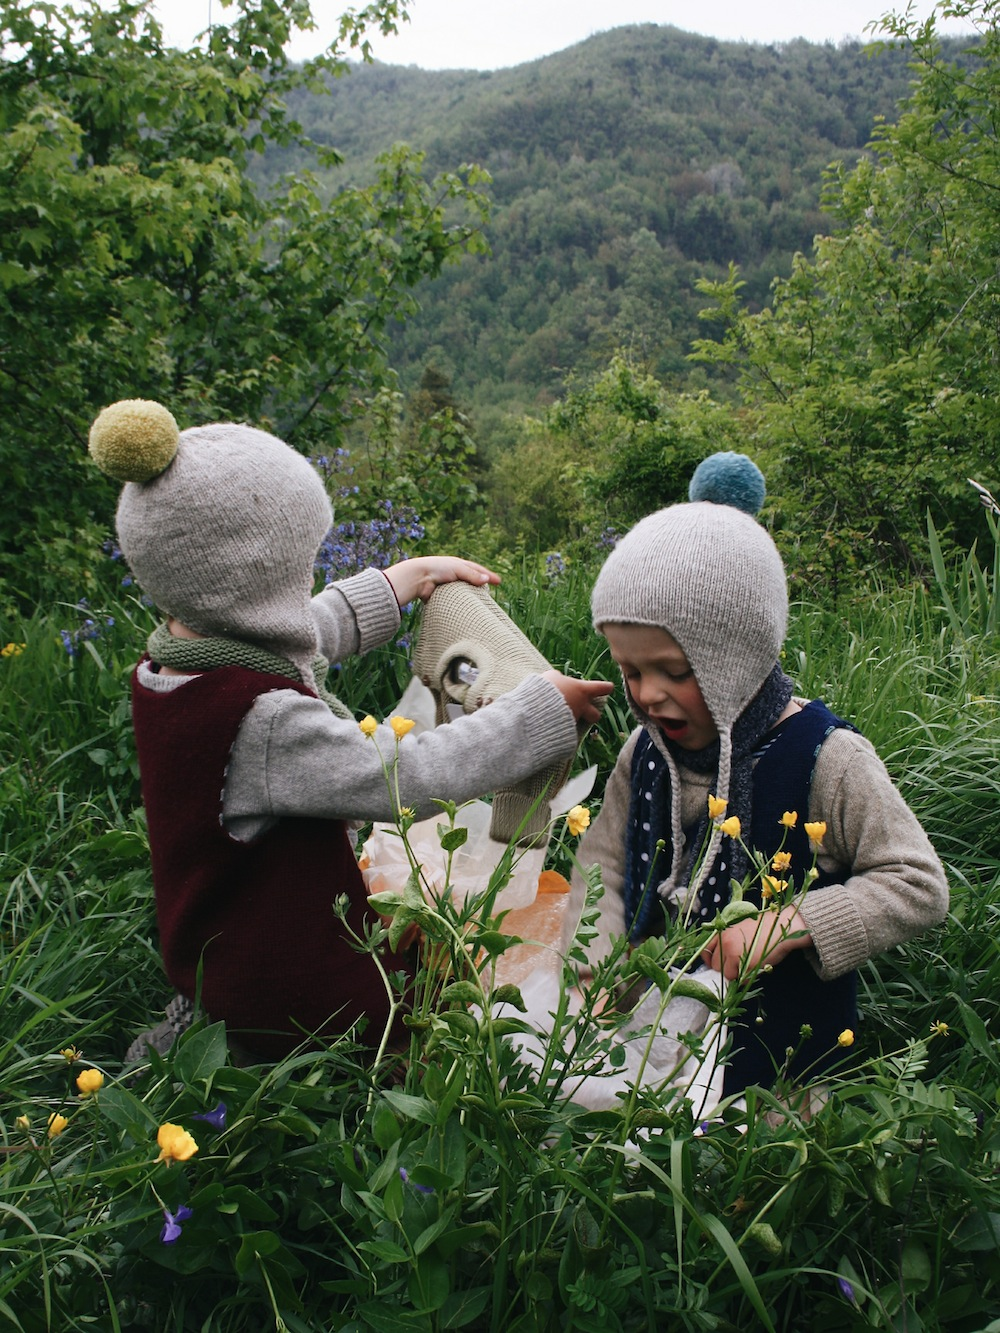 Growing Wild Things - @growingwildthings - theearlyhour.com